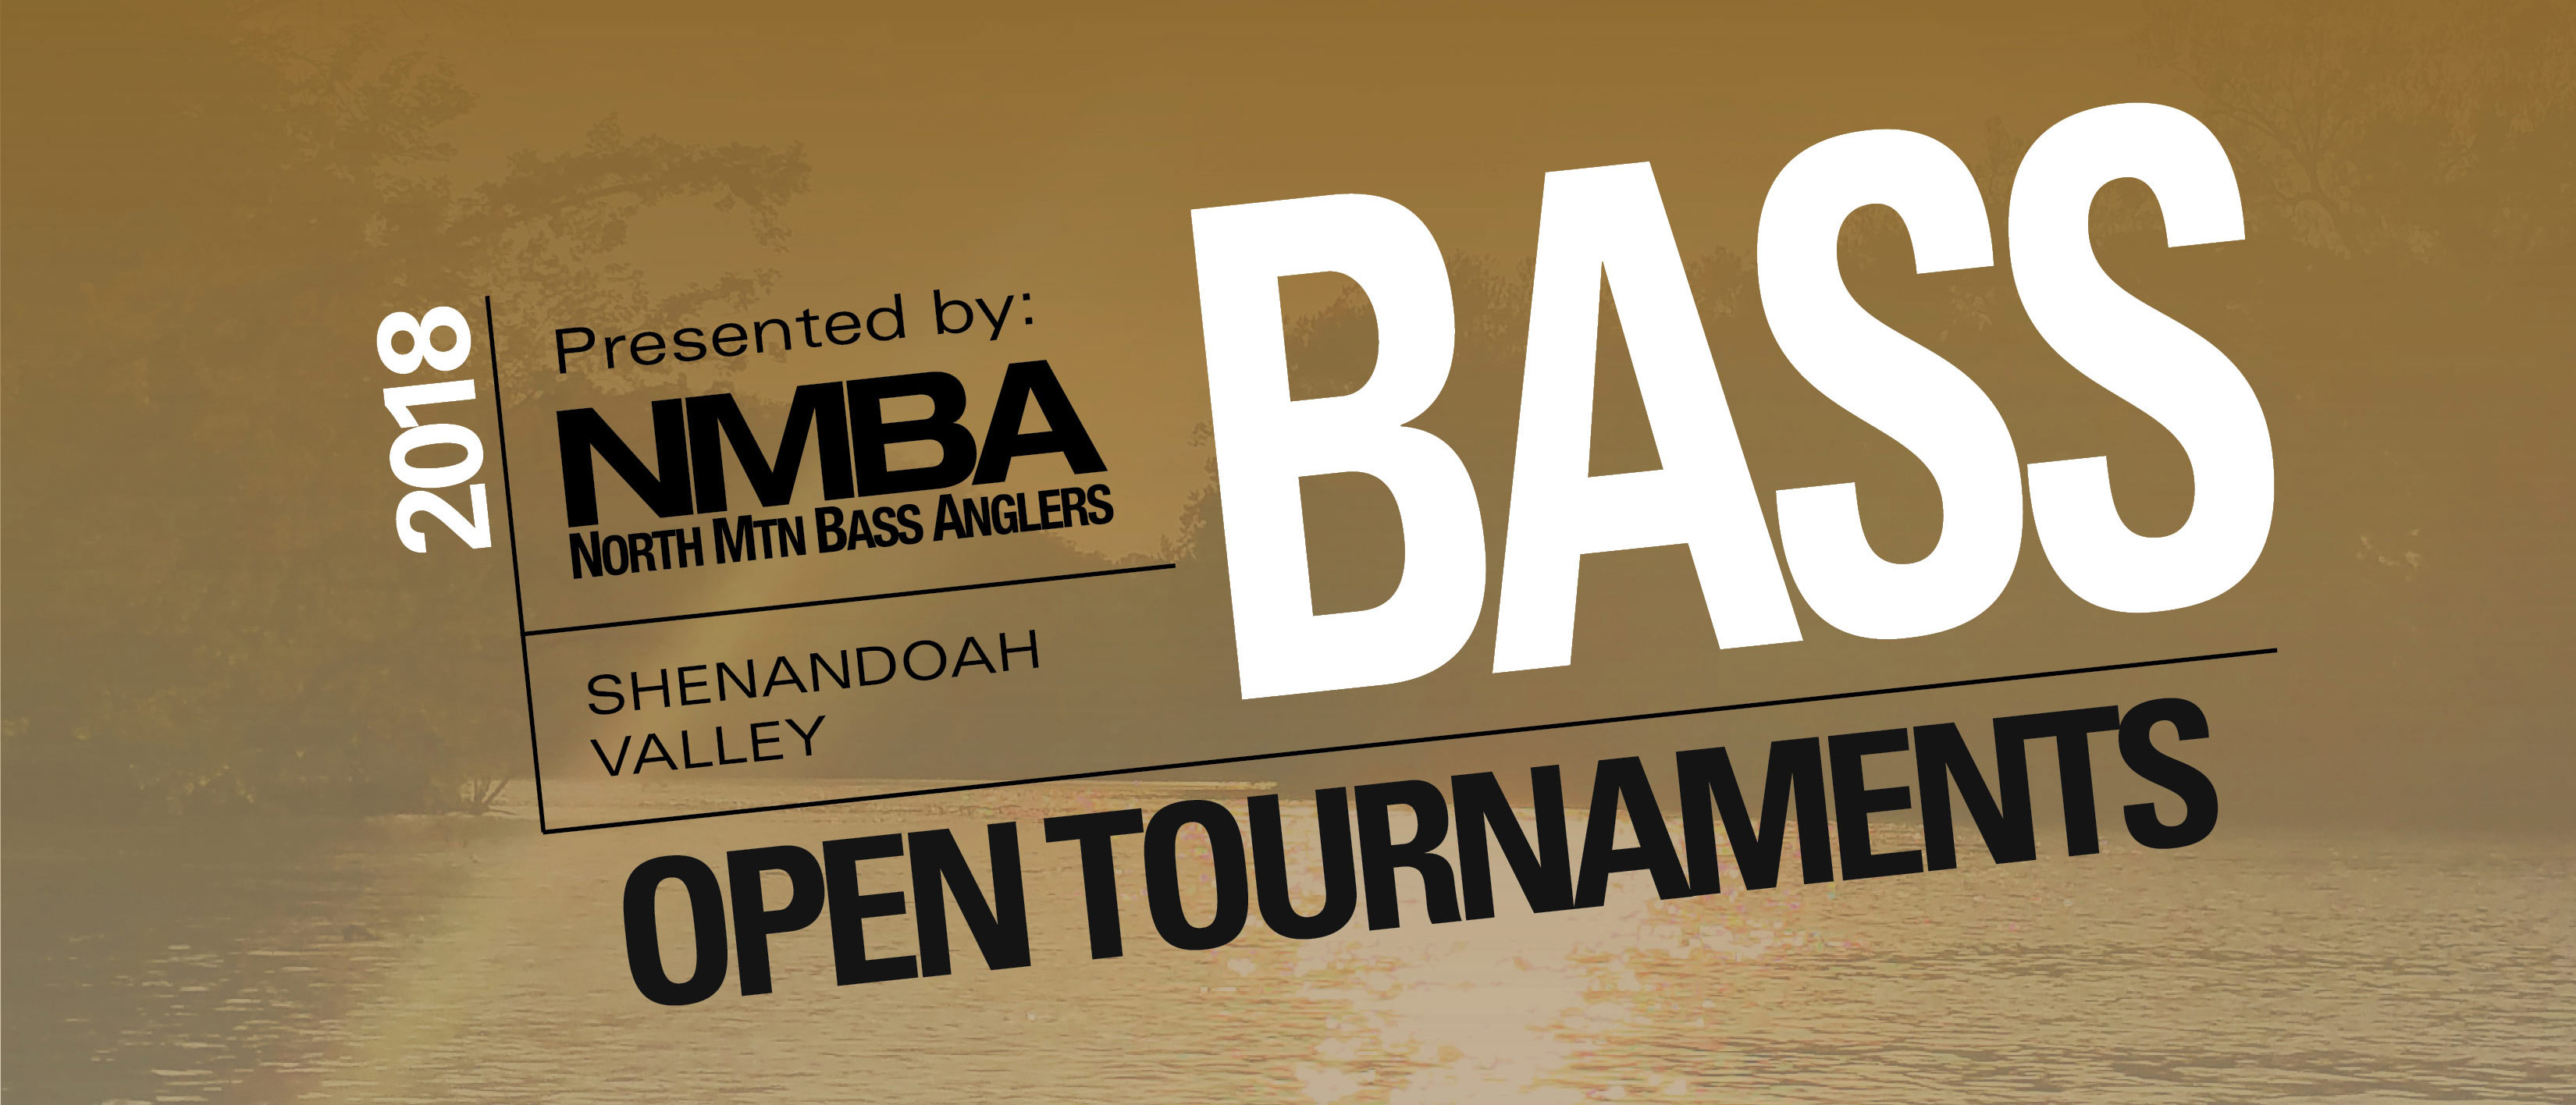 2018-NMBA-open-tournaments-header